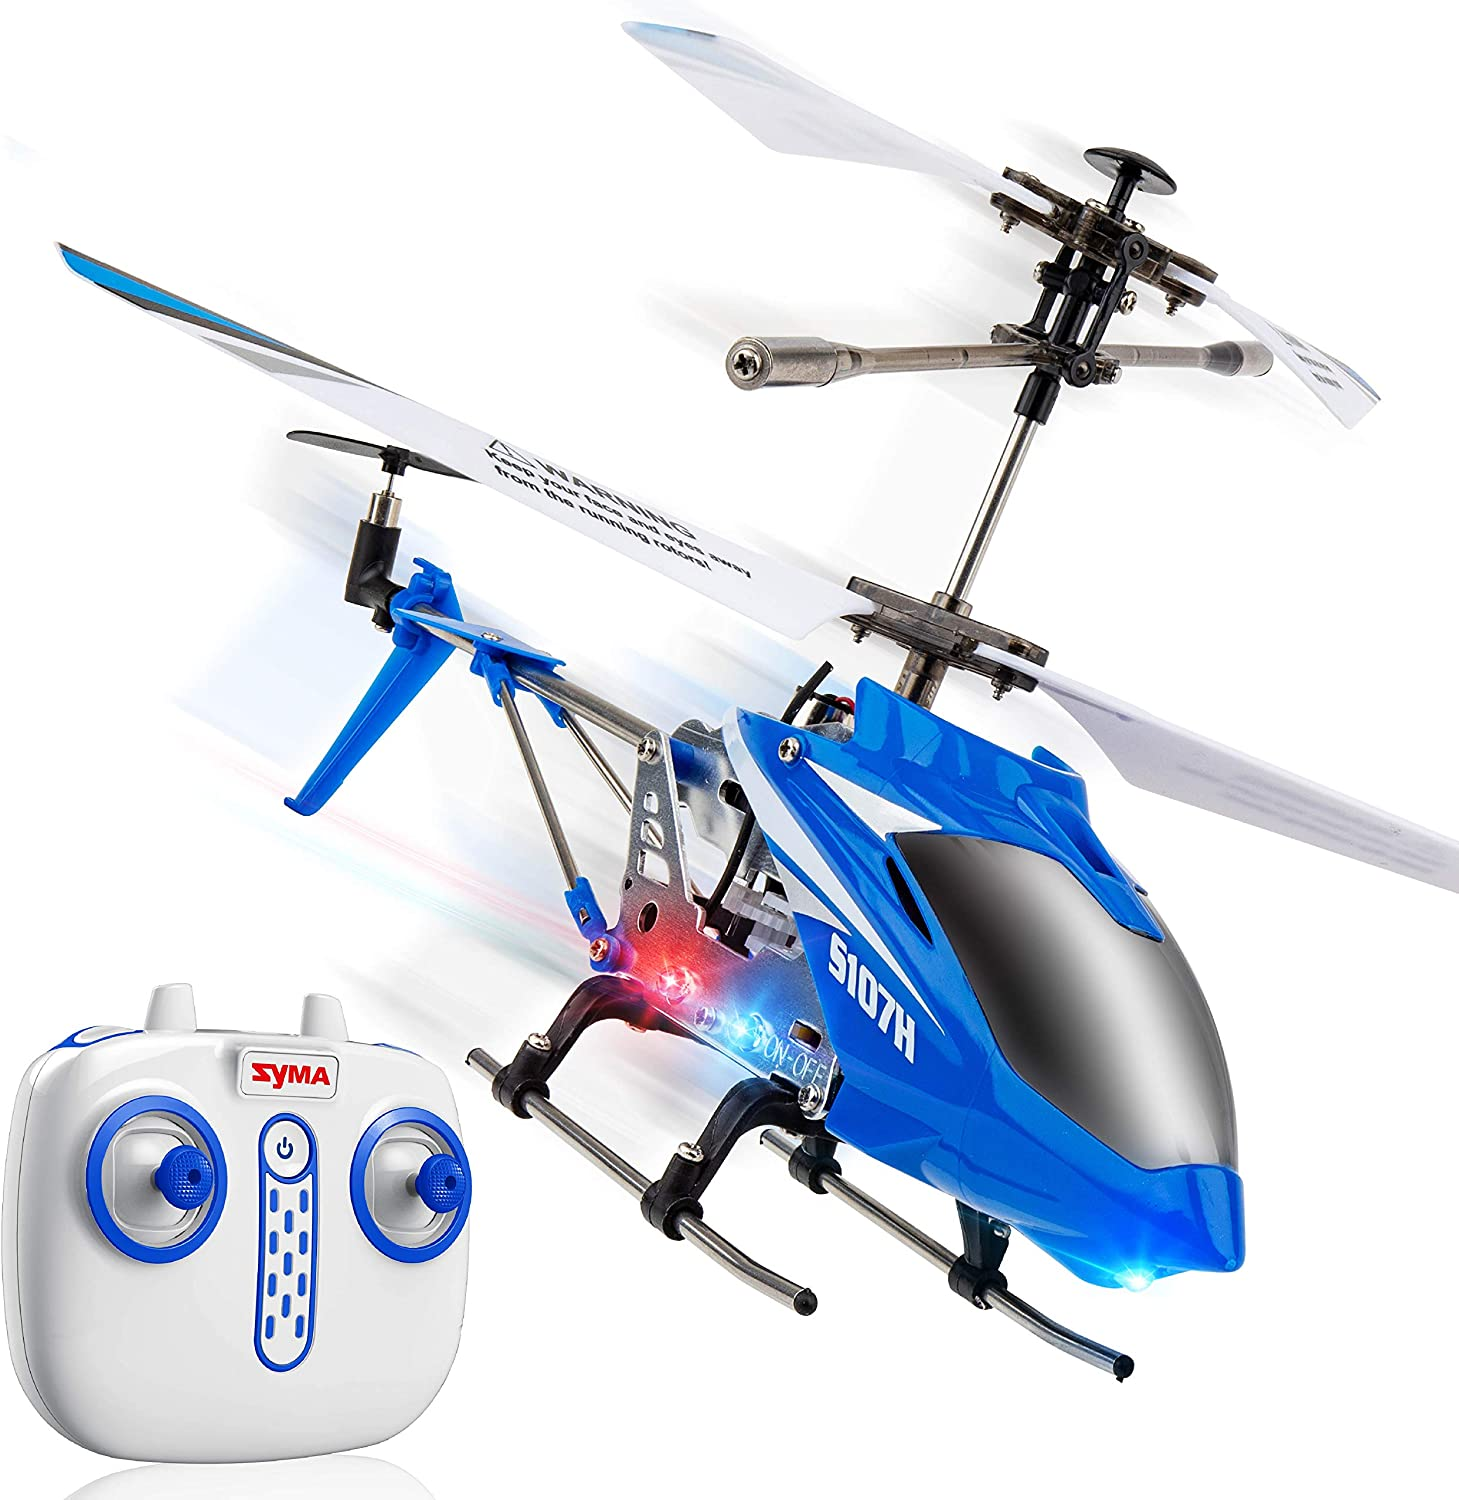 Amazon Com Syma S107h Remote Control Helicopter W Altitude Hold Indoor Rc Helicopter For Adults Flying Toys For Kids Blue Toys Games